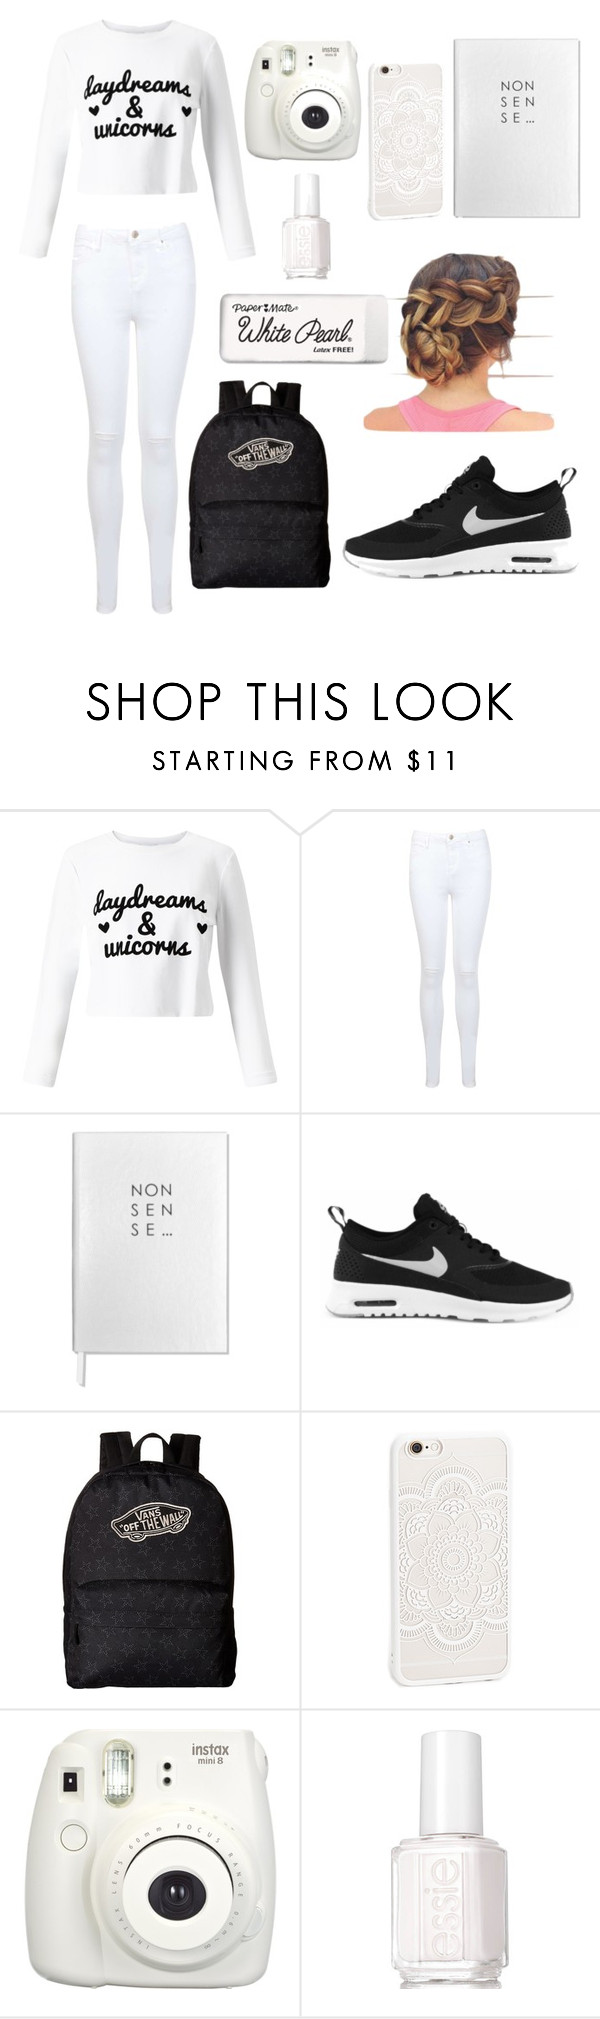 """Untitled #85"" by mashula-004 ❤ liked on Polyvore featuring Miss Selfridge, Sloane Stationery, NIKE, Vans, JFR, Fujifilm, Essie and Paper Mate"